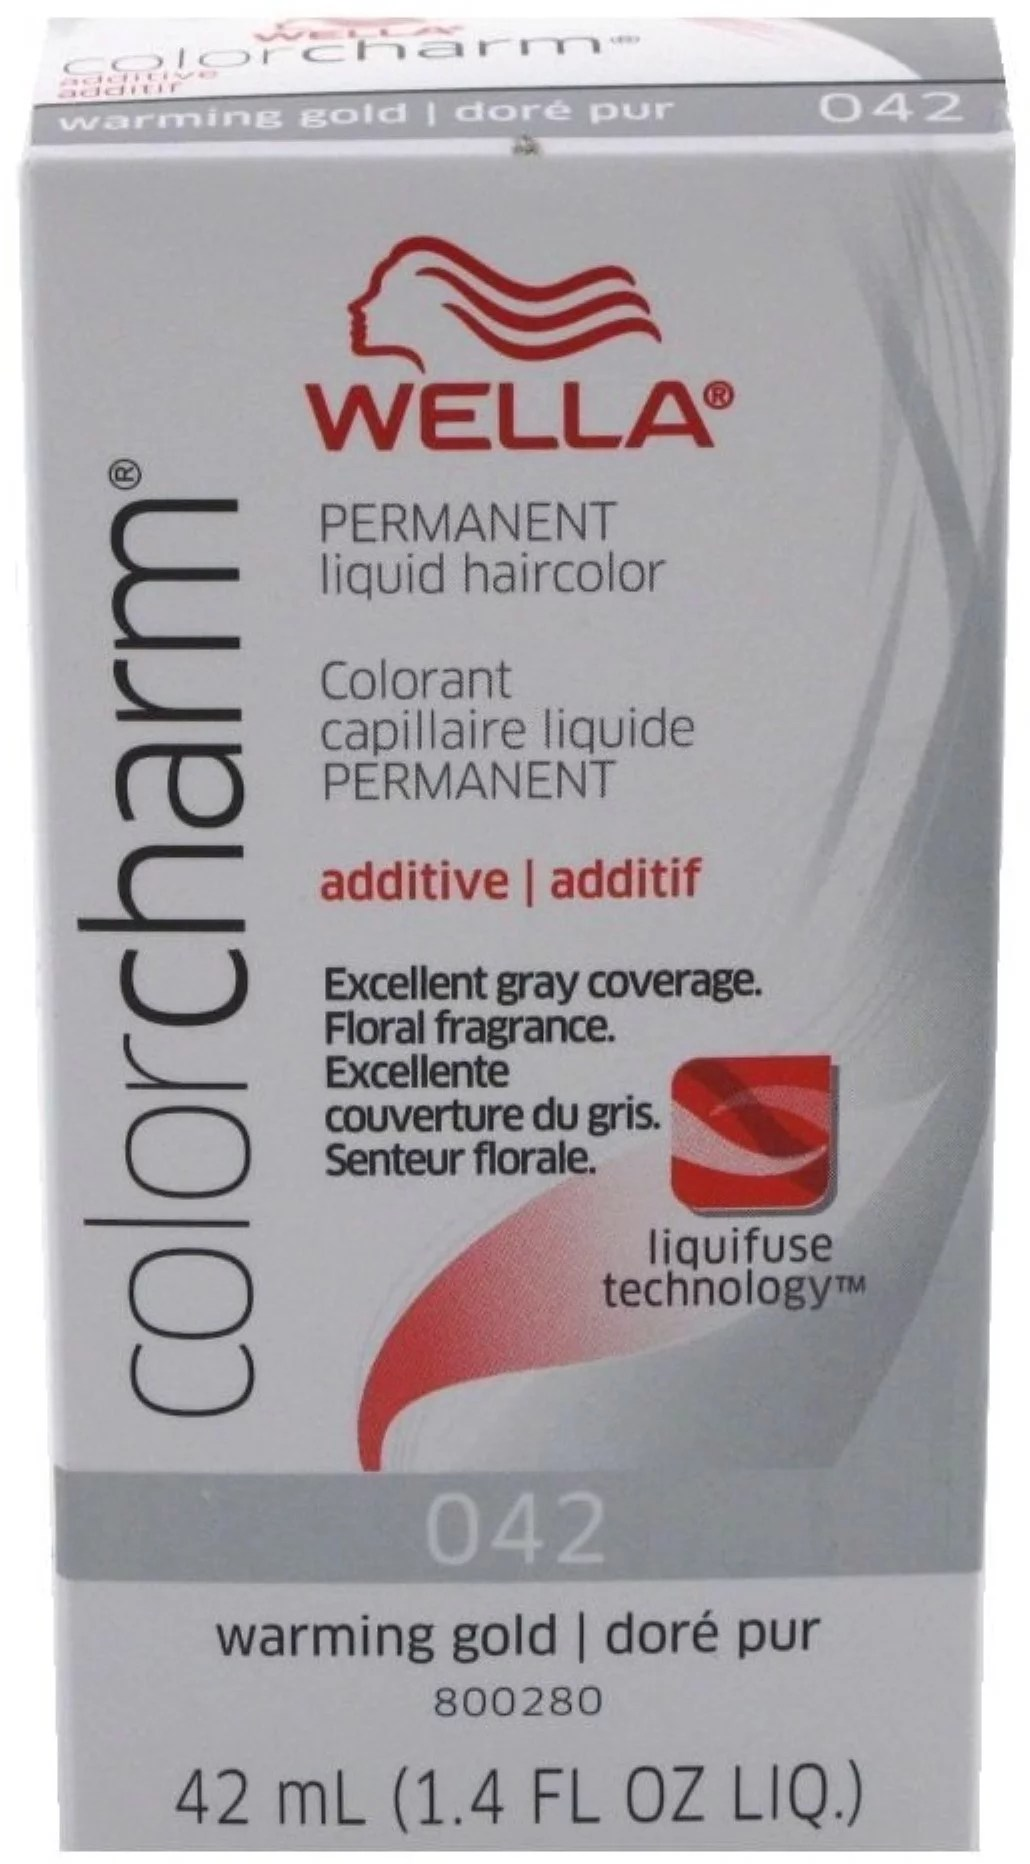 Wella Additive : wella, additive, Wella, Charm, WARMING, Additive, Permanent, Liquid, Color, HC-L042, Walmart.com